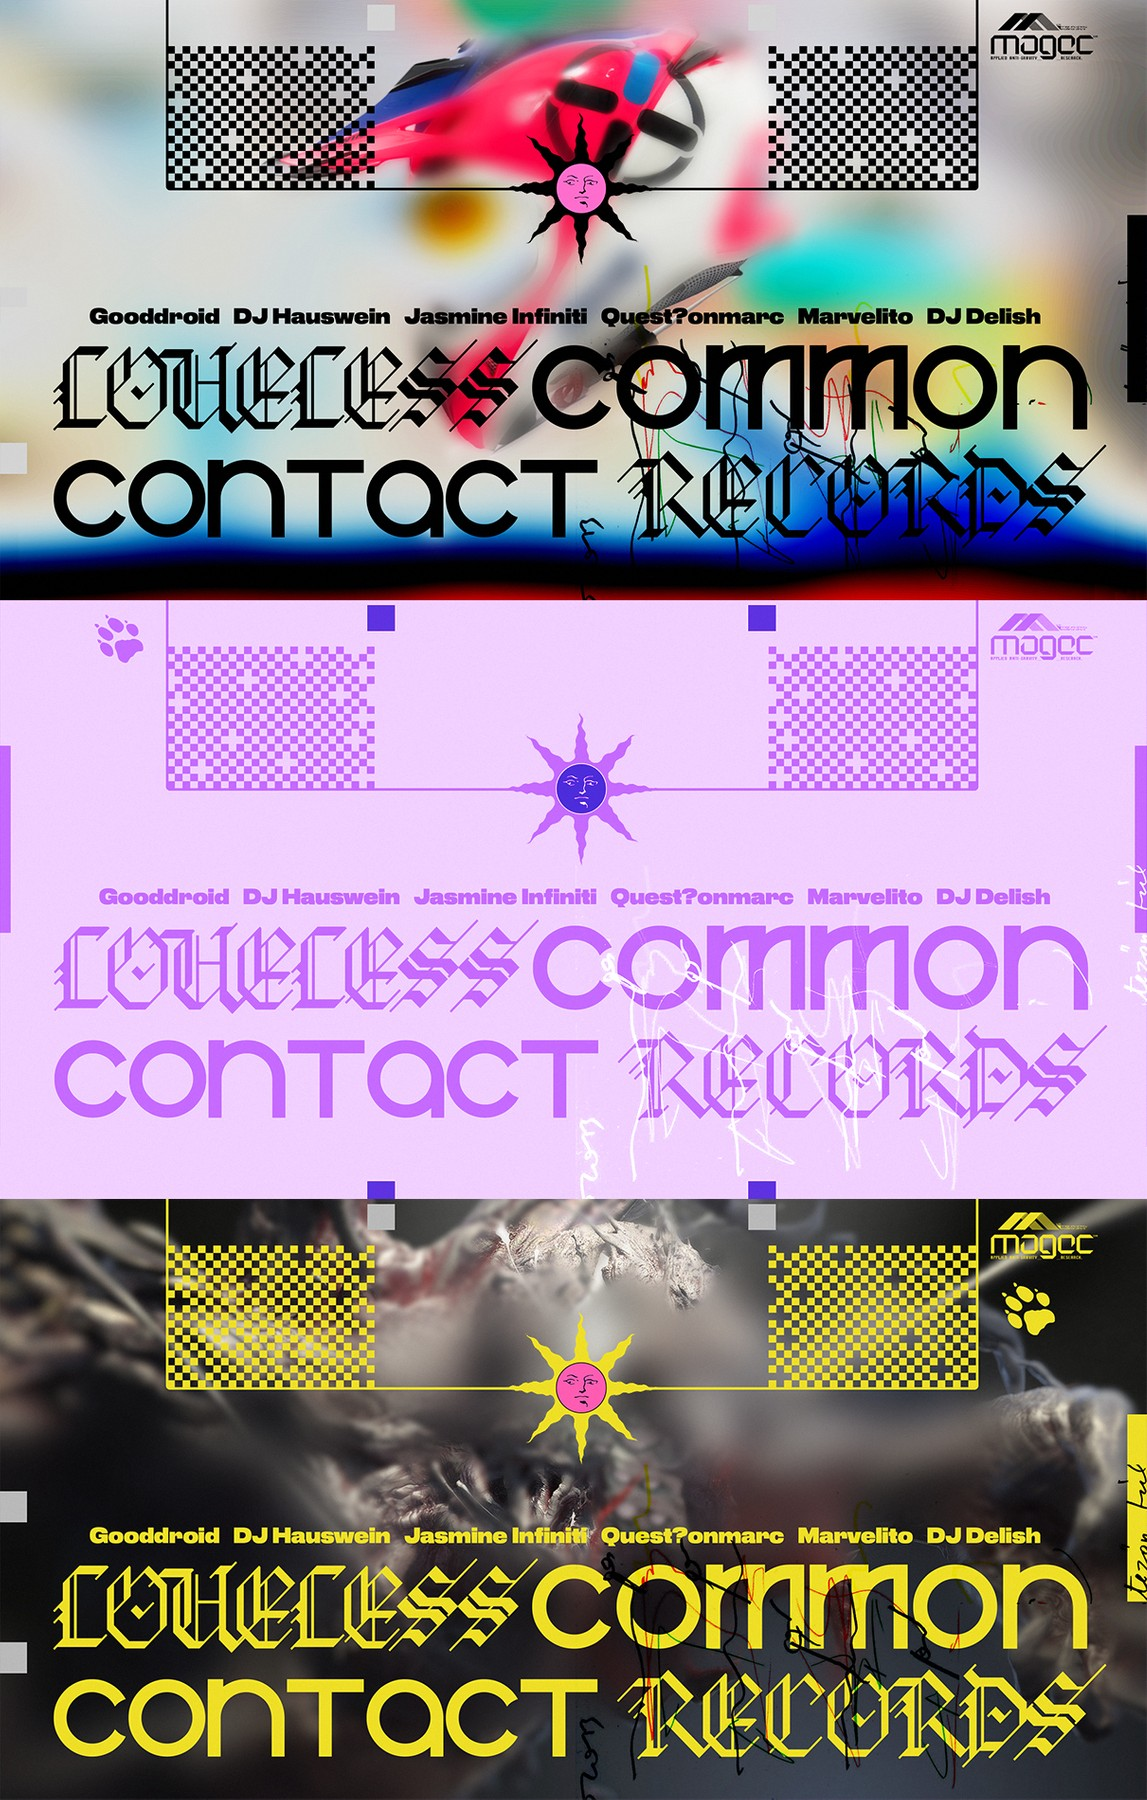 Loveless Records x Common Contact flyer (2019) - Nufolklore